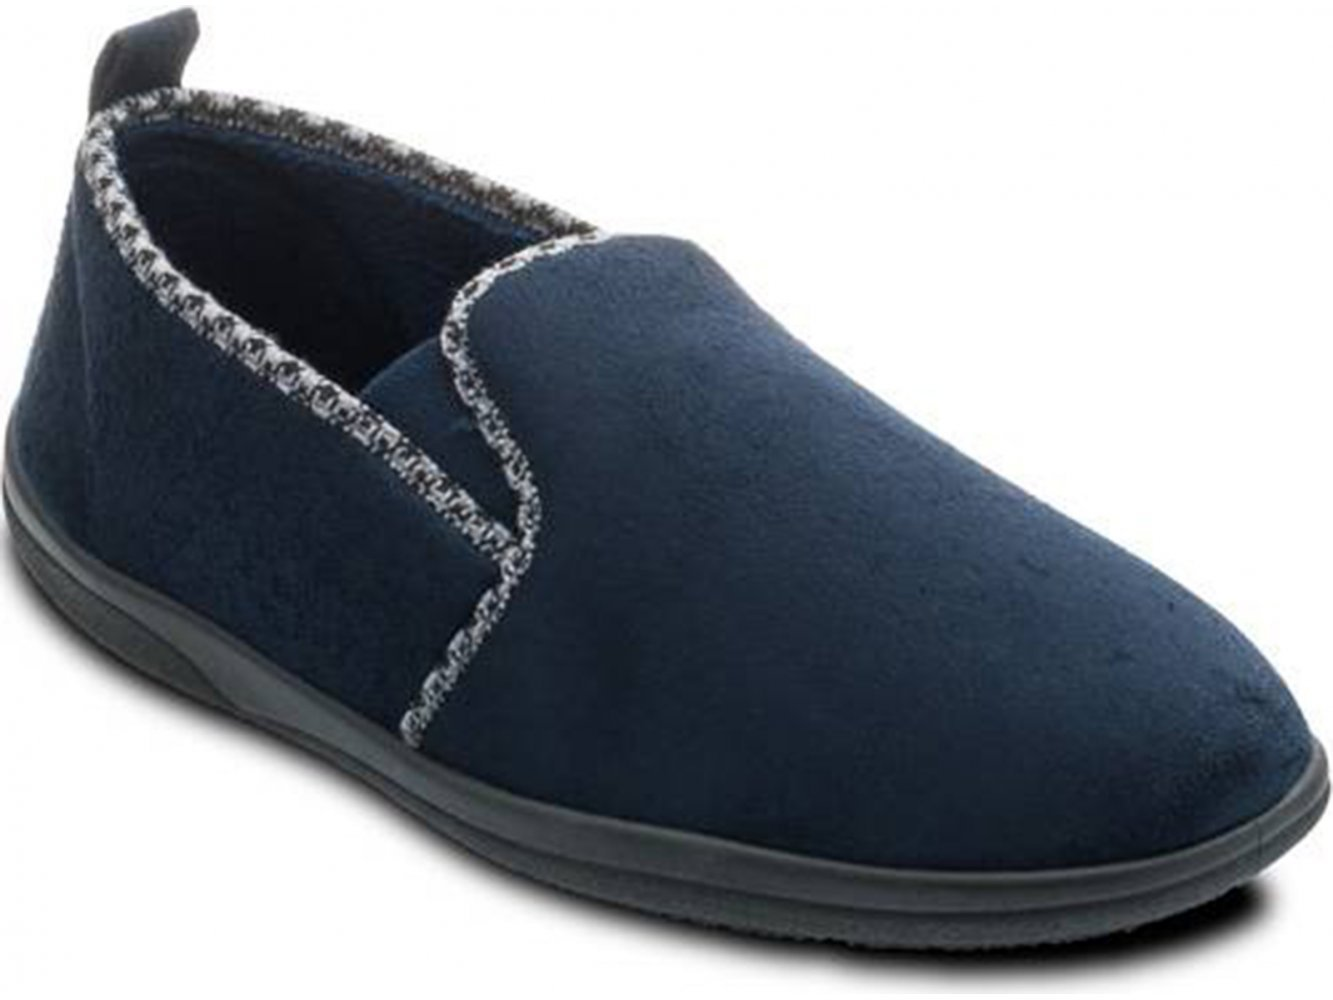 Padders LEWIS Mens Microsuede Wide G Fitting Full Slippers Navy  Amazoncouk Shoes  Bags